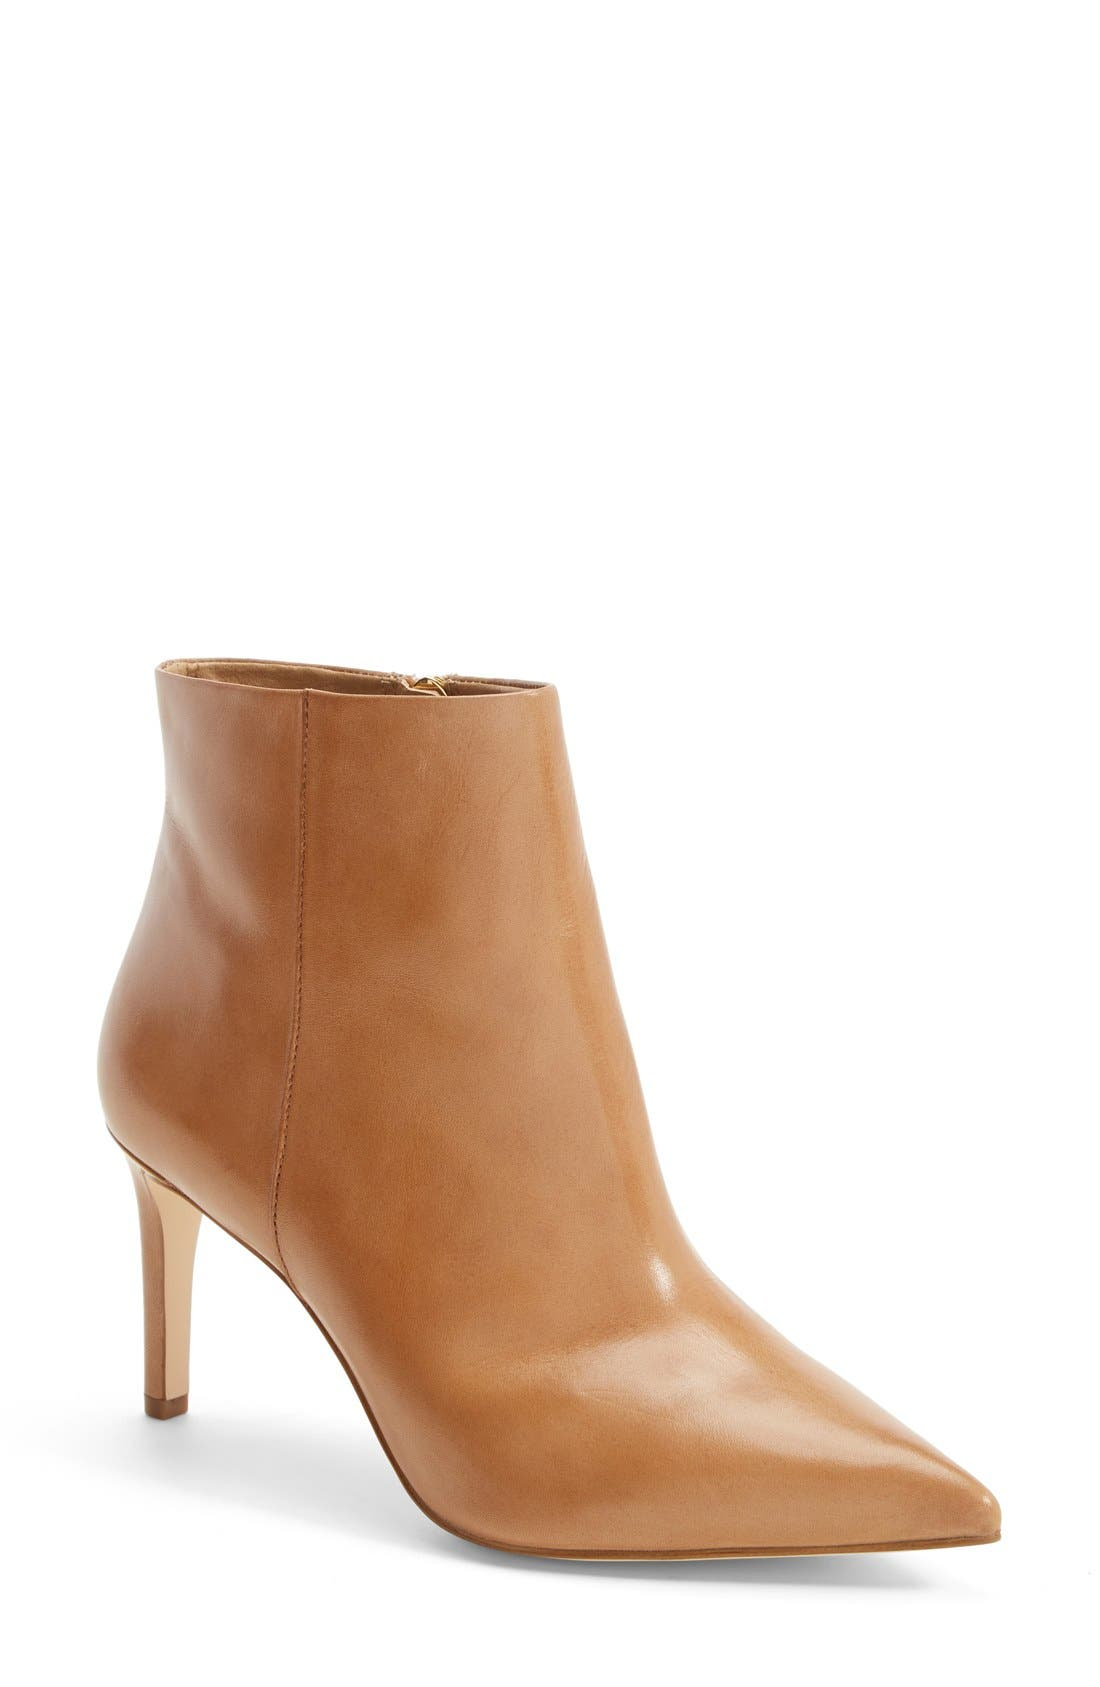 Main Image - Sam Edelman 'Karen' Pointy Toe Bootie (Women)